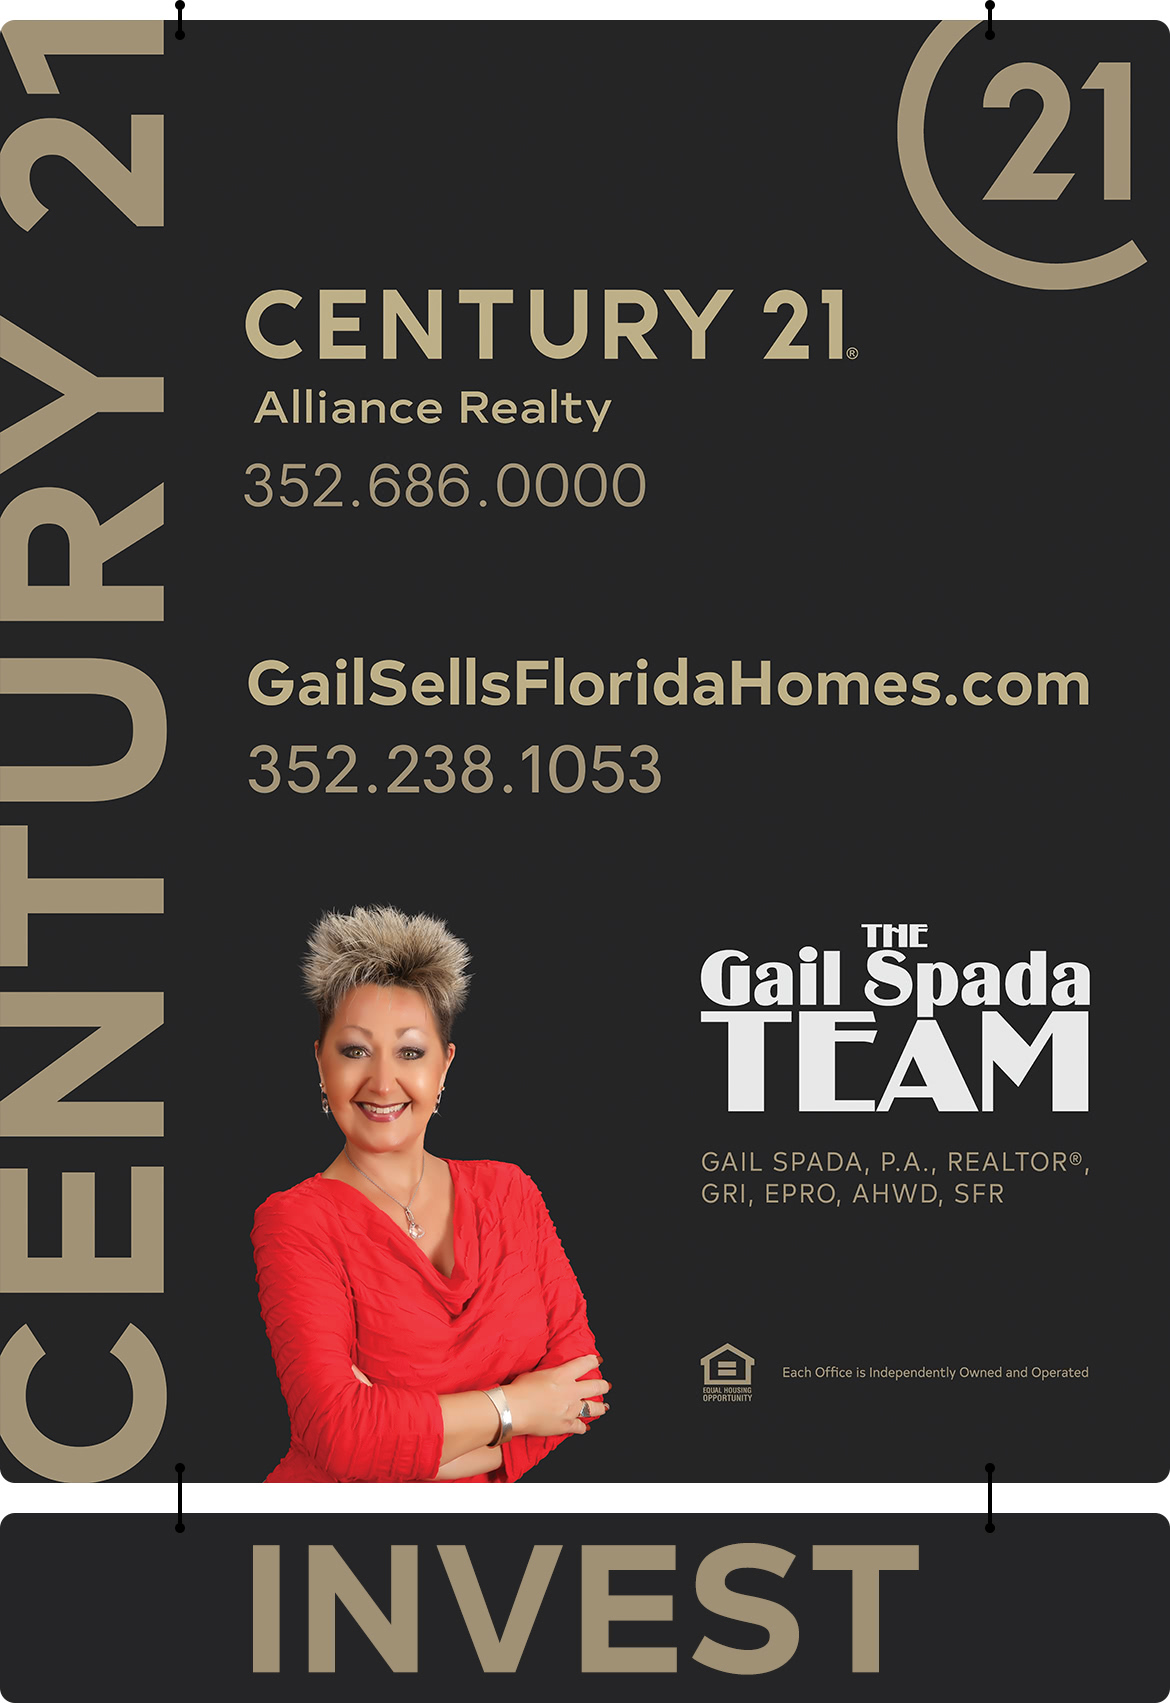 Invest in Hernando County real estate with THE Gail Spada TEAM.